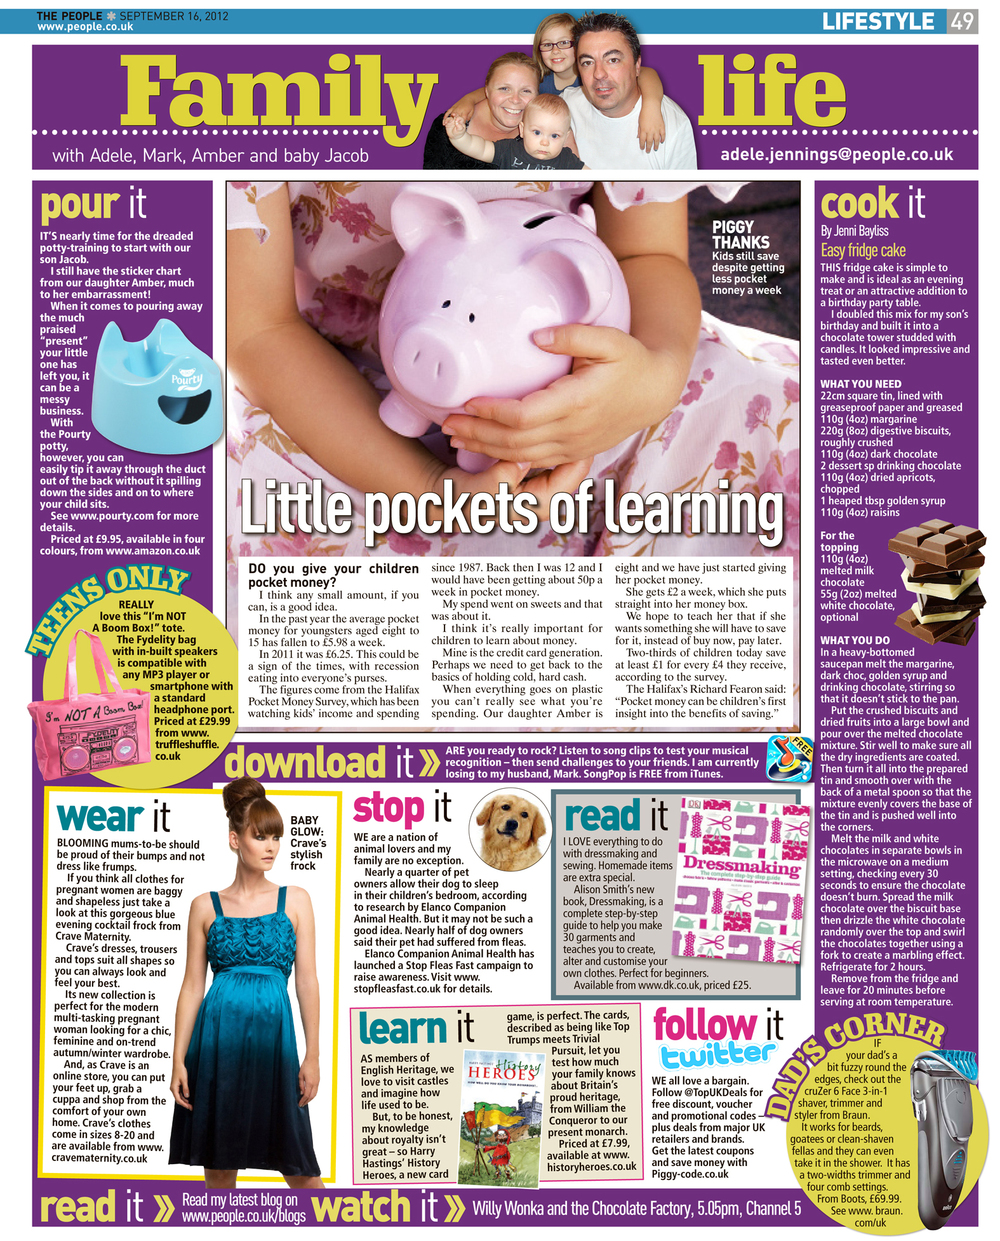 Published in The Sunday People, September 16, 2012